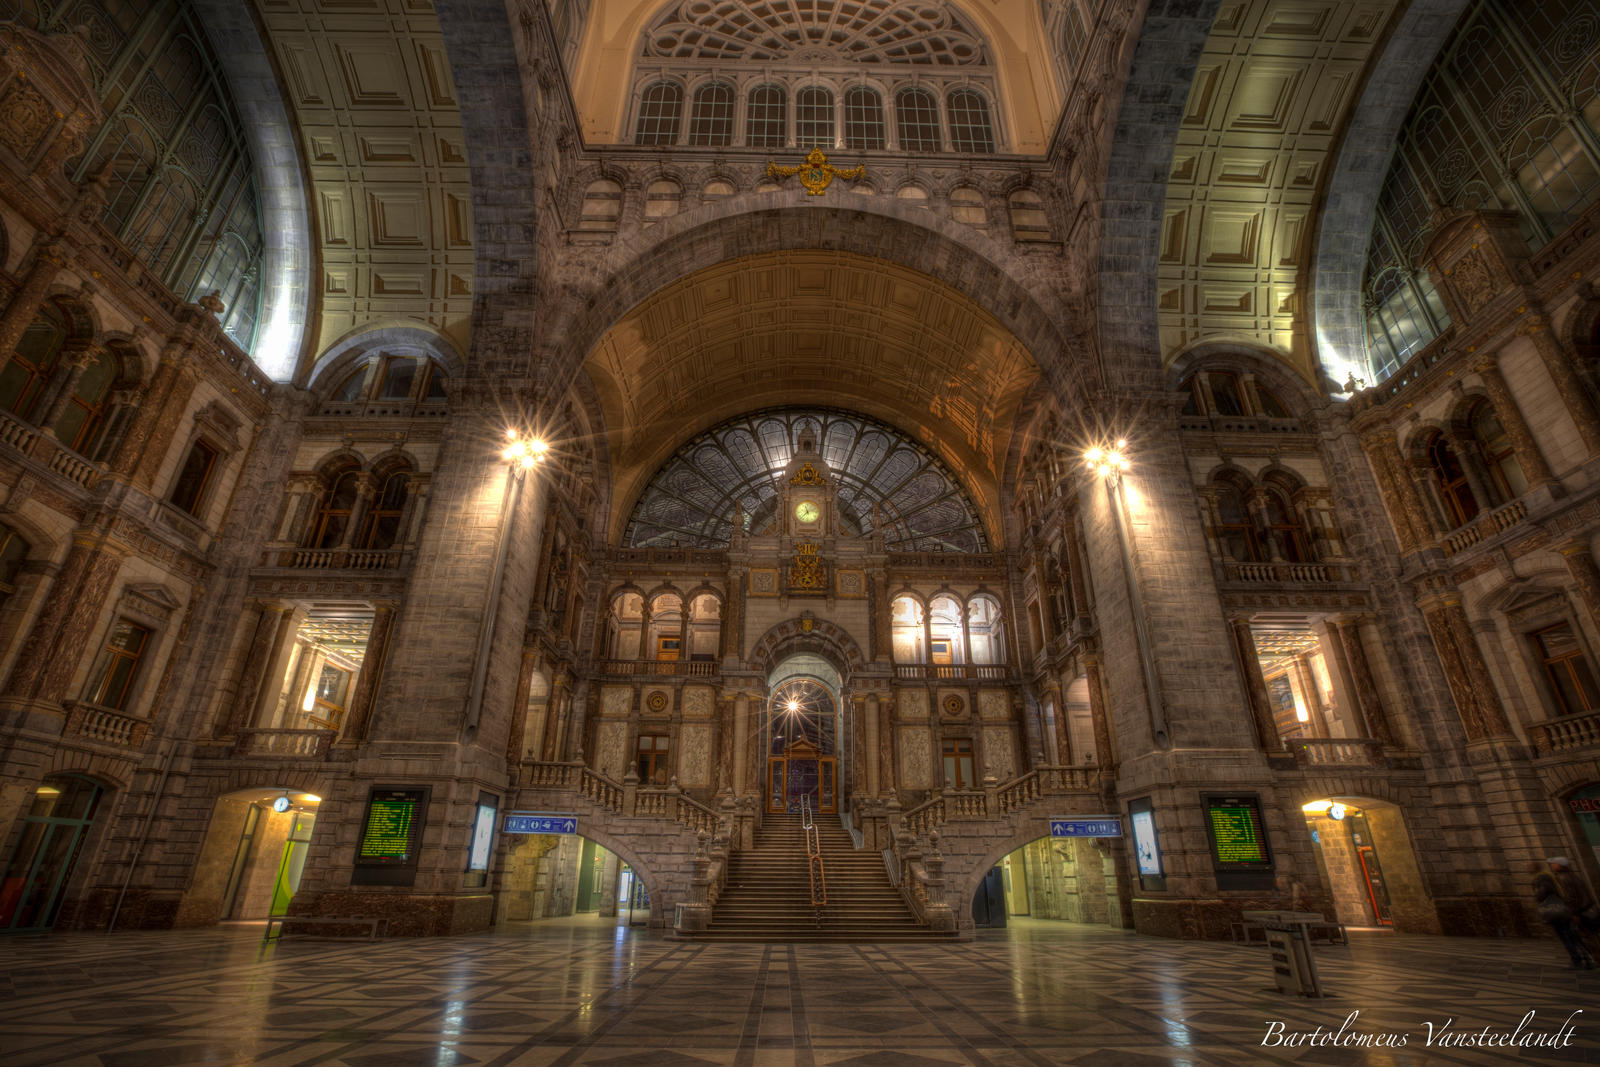 Central station antwerp belgium by bartoloman on deviantart for Interieur belgium